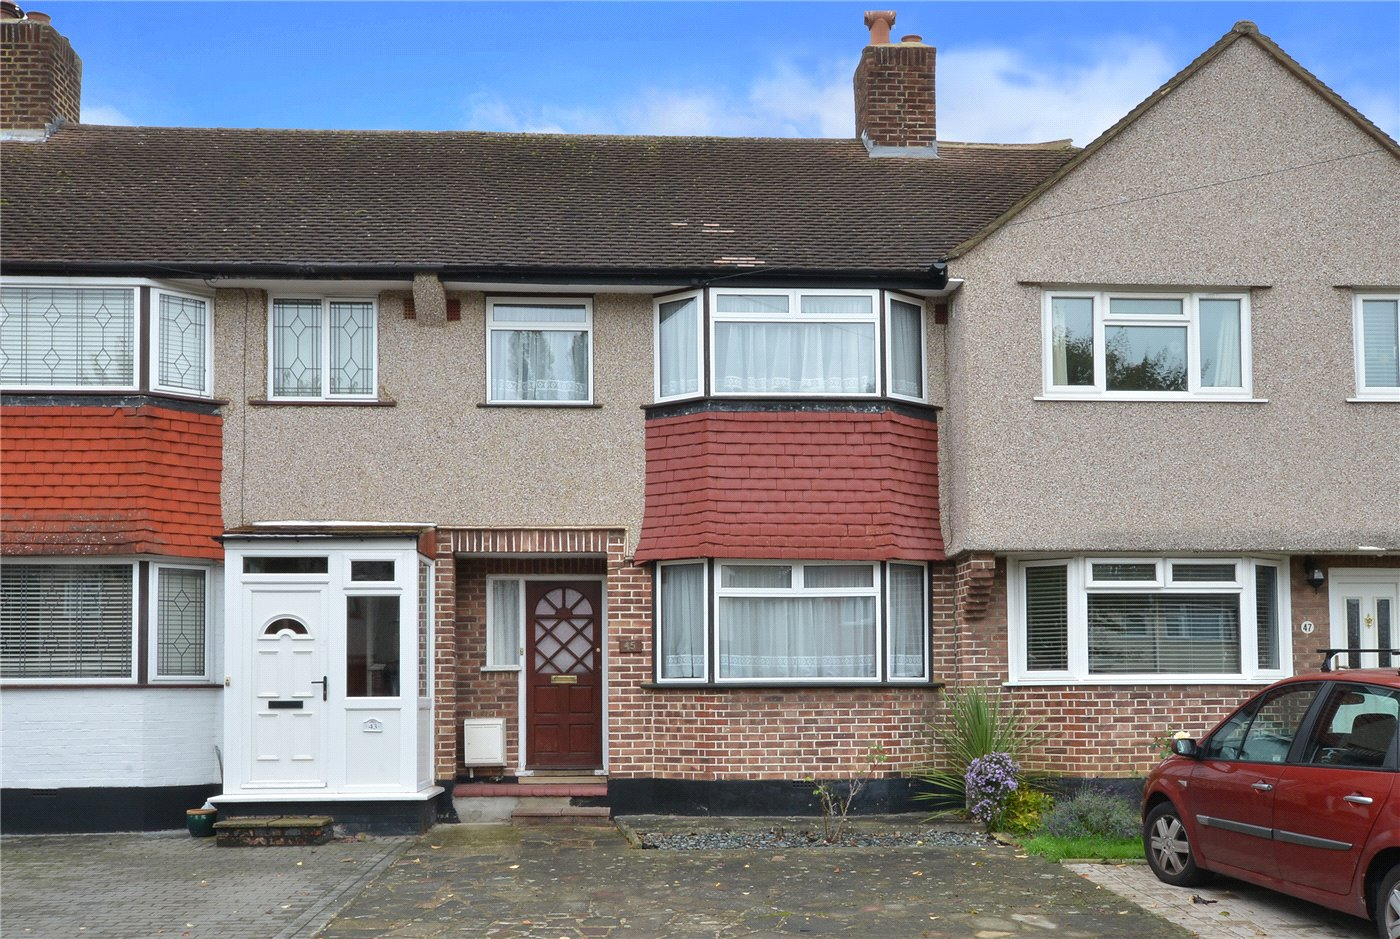 3 Bedrooms Terraced House for sale in Caverleigh Way, Worcester Park, KT4